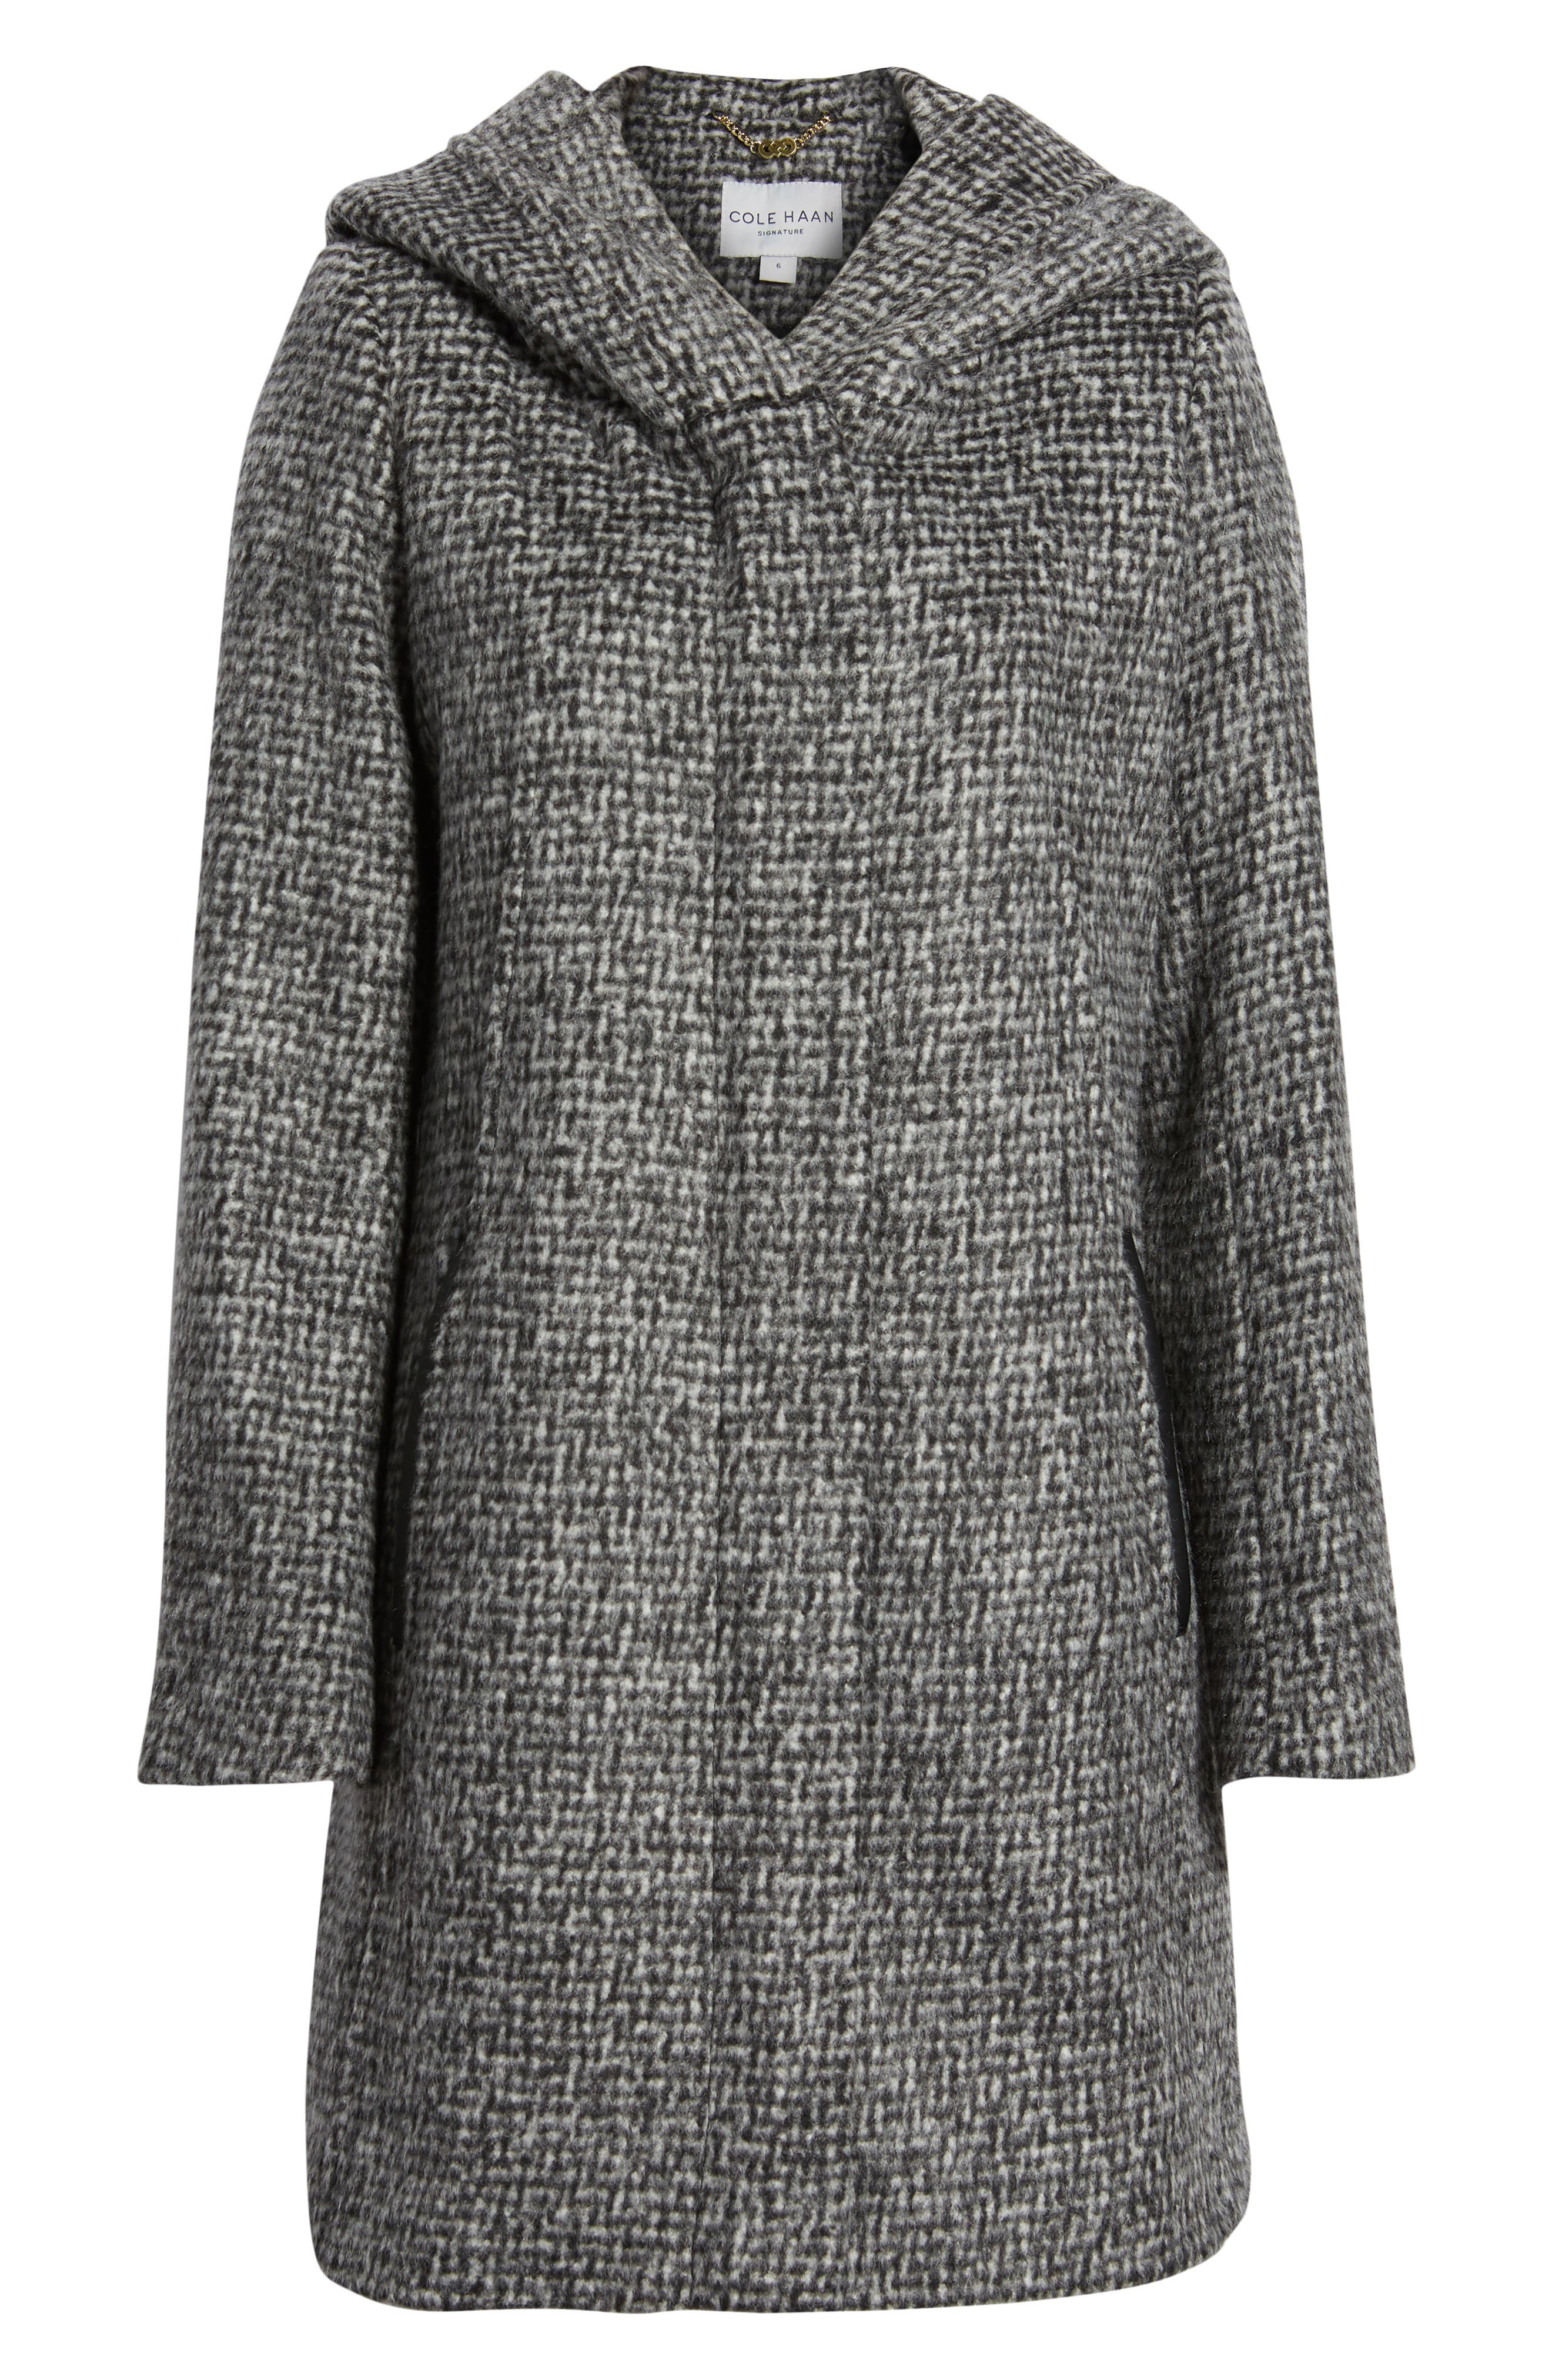 Fuzzy Houndstooth Coat,                             Alternate thumbnail 6, color,                             BLACK/ WHITE